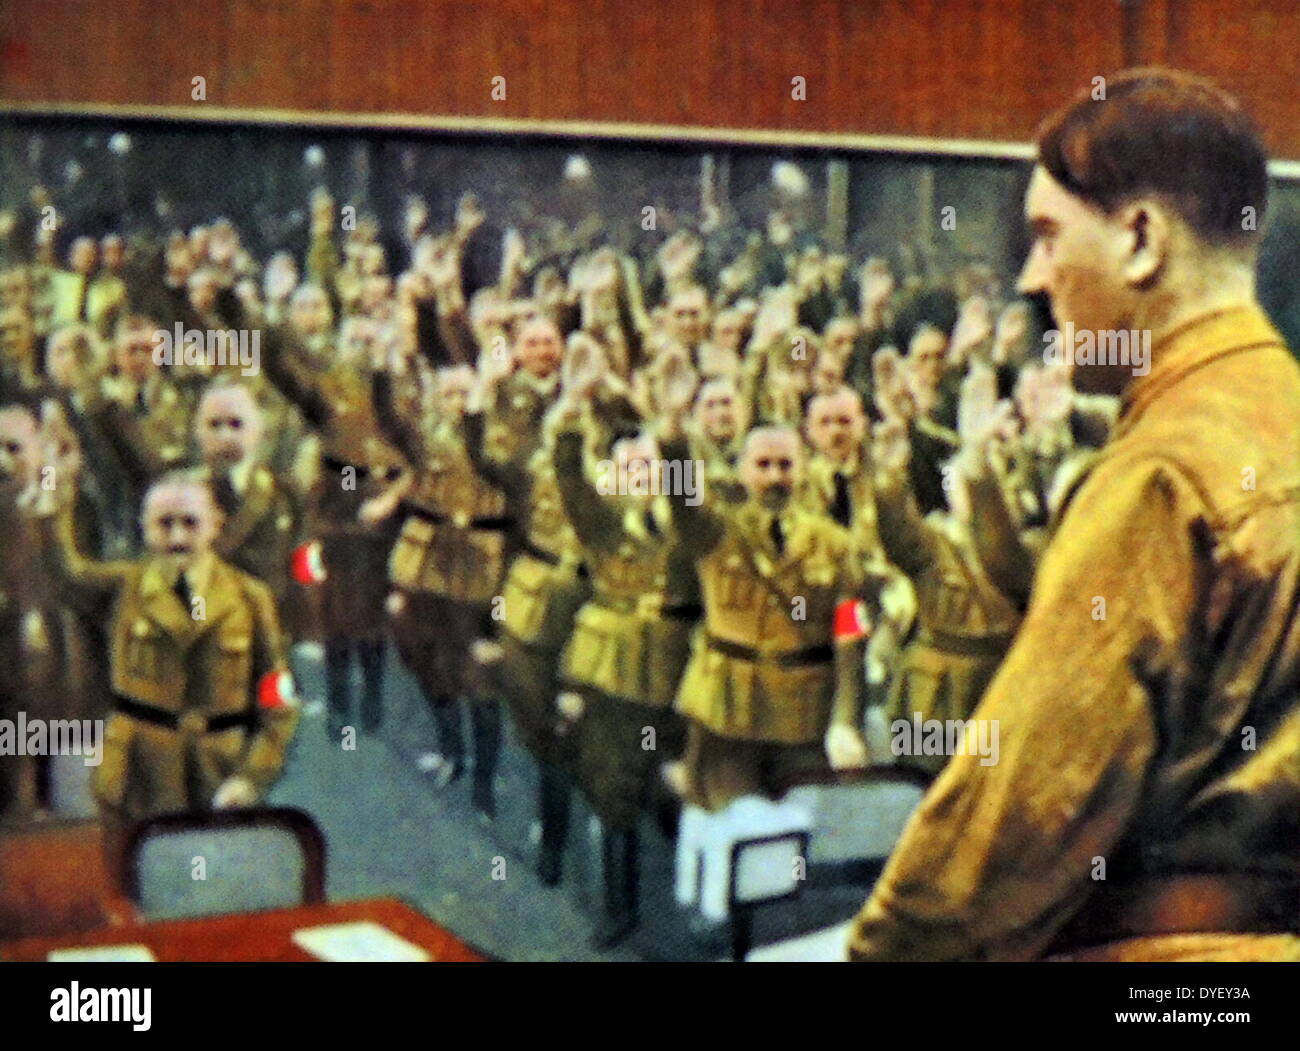 Adolf Hitler addressing the Reichstag or German Parliament circa 1933-34 - Stock Image